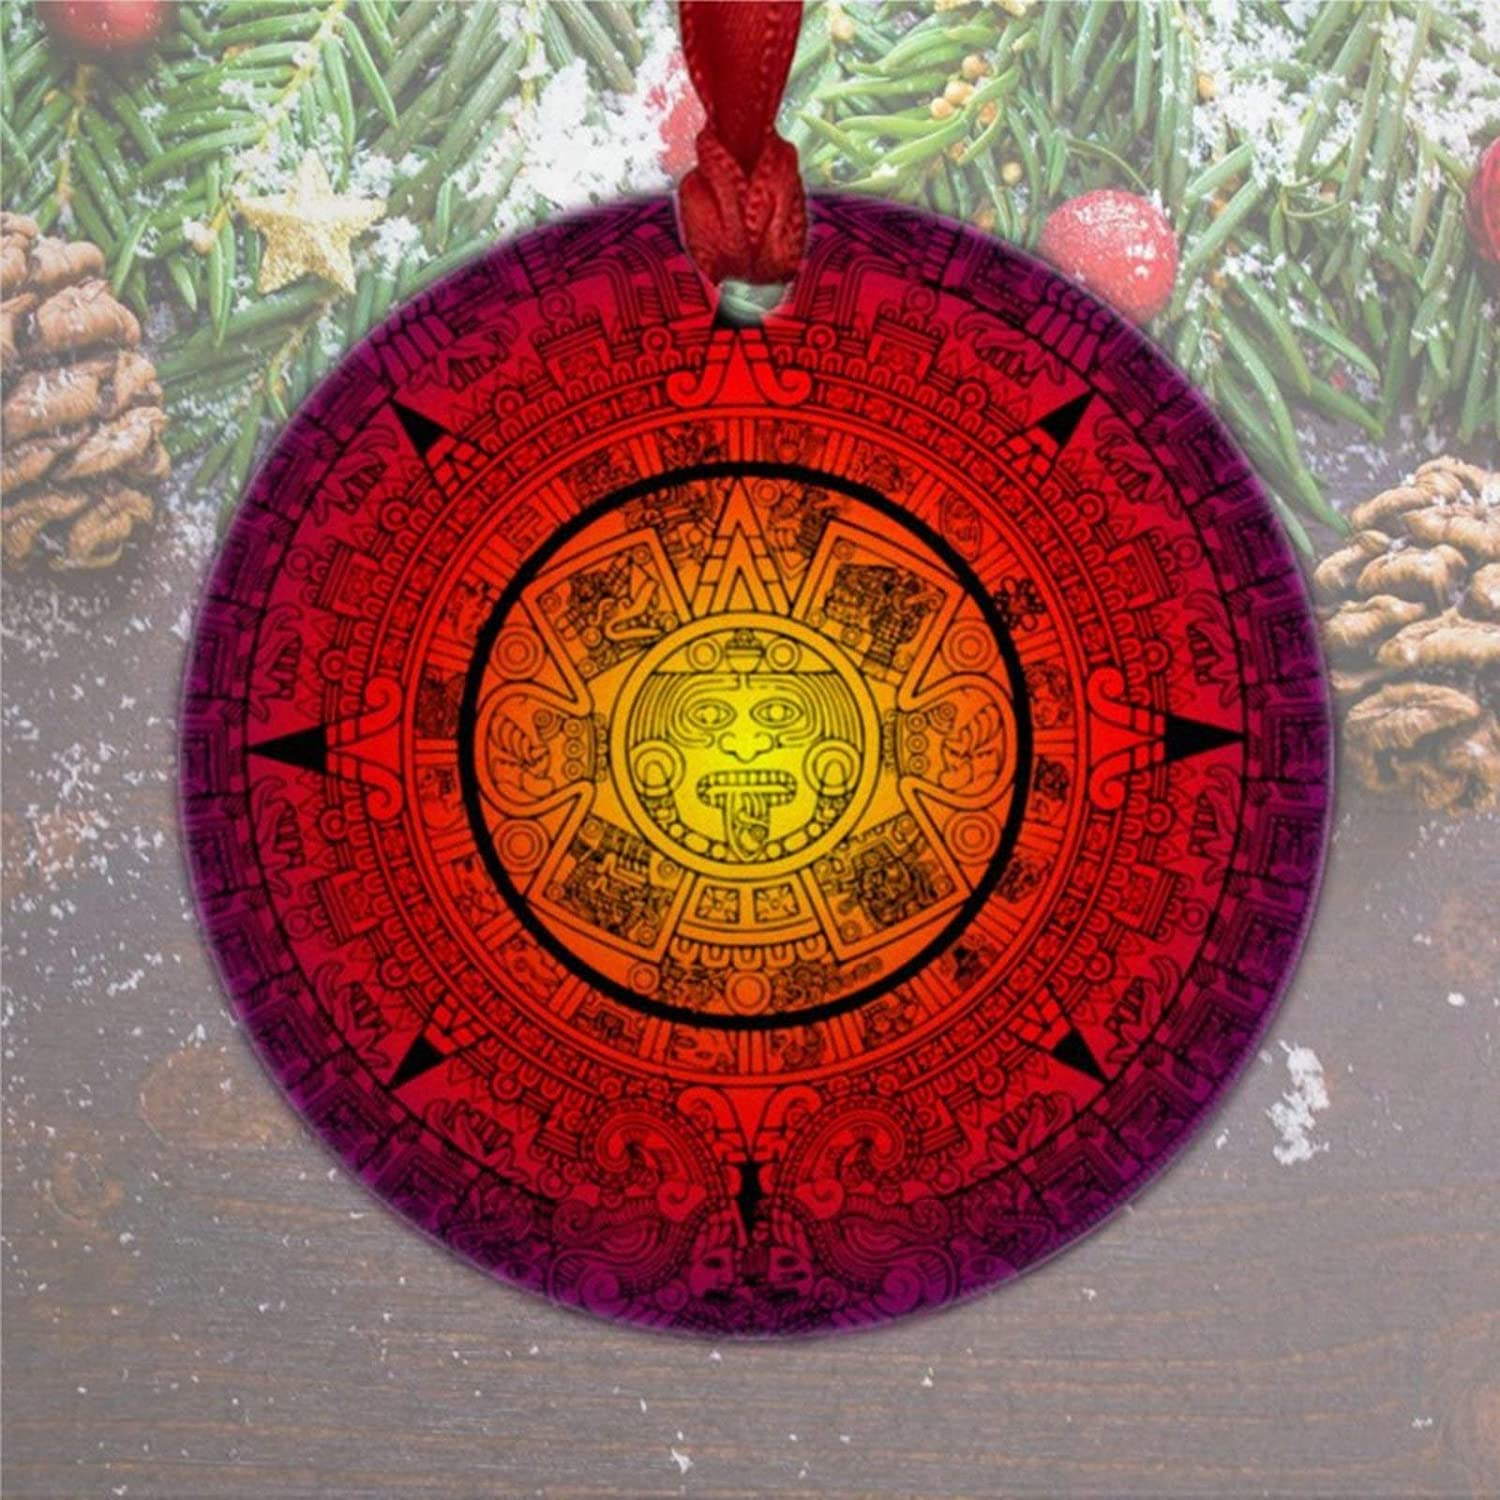 DONL9BAUER Mexican Christmas Ornaments Aztec Design Mayan Colors Hanging Ornament Xmas Tree Decorations Present for Family Friends 2020 A Year to Remember